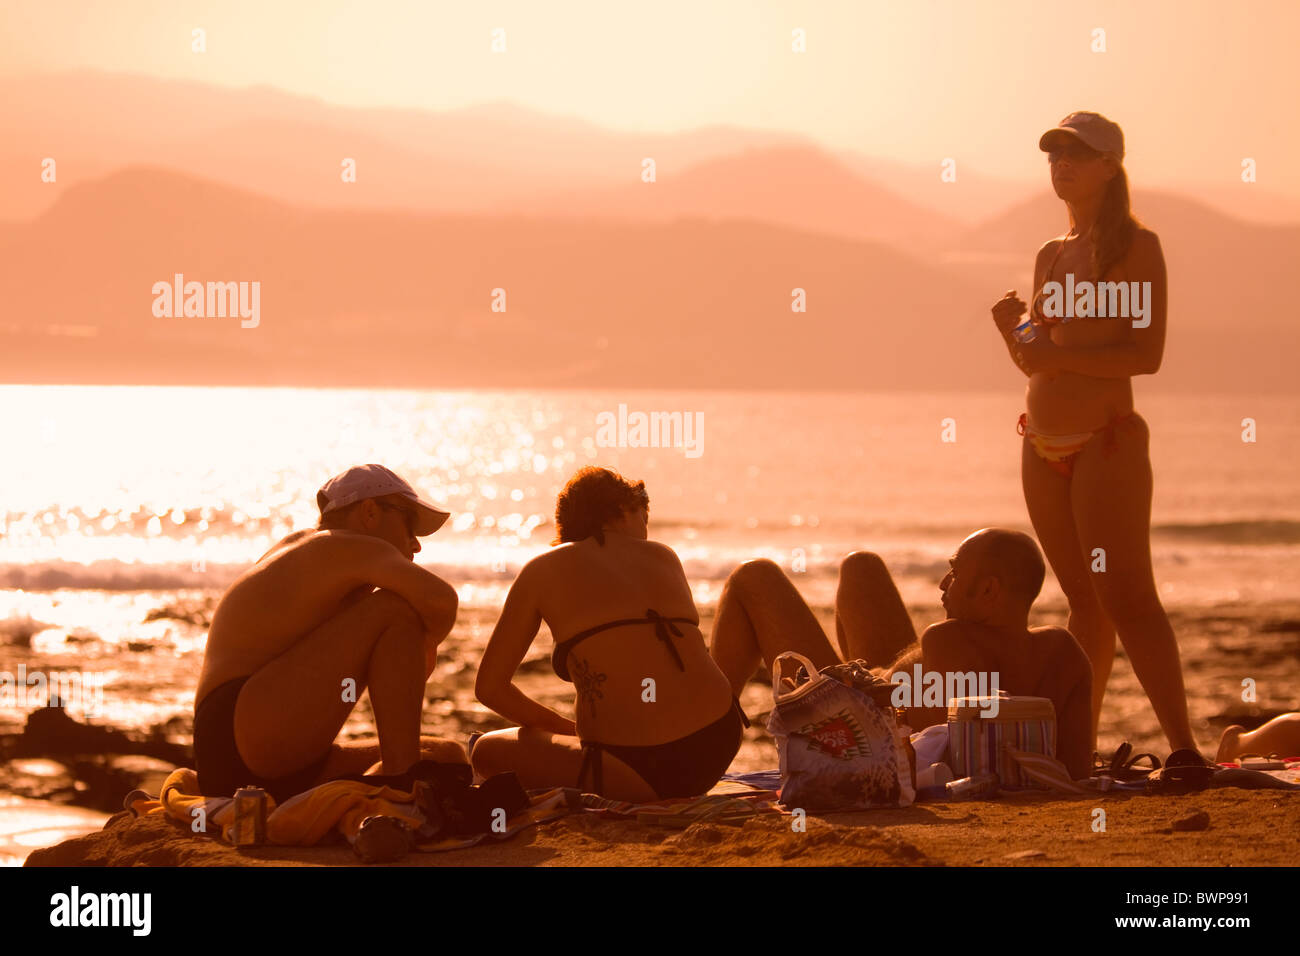 Sonnenuntergang in The The Islas Canarias Ocean & Erde Pro Surf Competition.Competitors bei Sonnenuntergang Stockbild